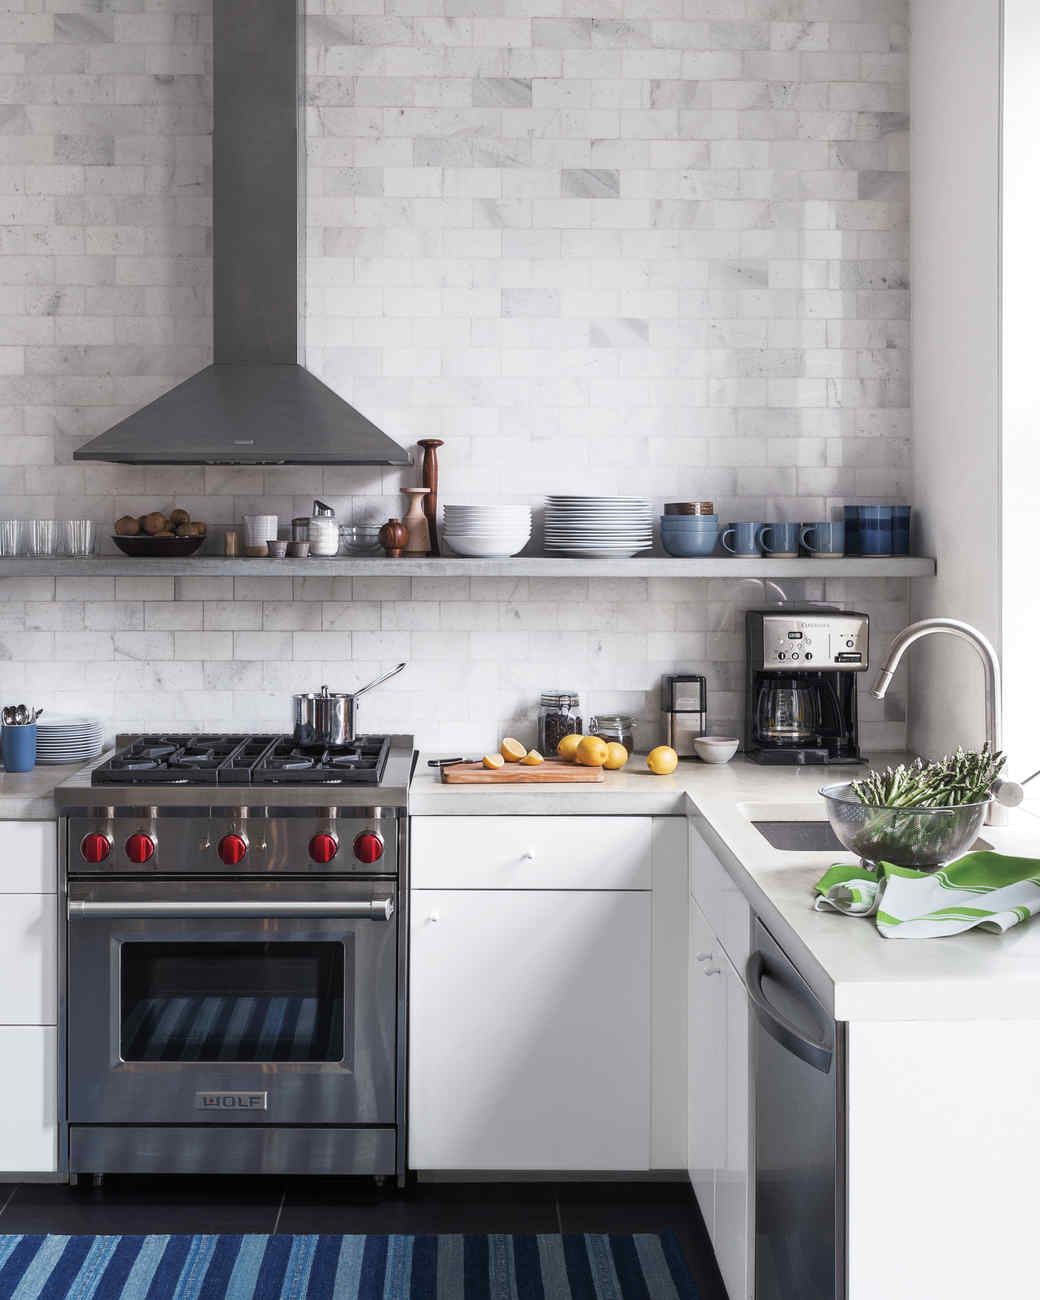 Deep Clean Kitchen: A Guide To Seriously Deep Cleaning Your Kitchen